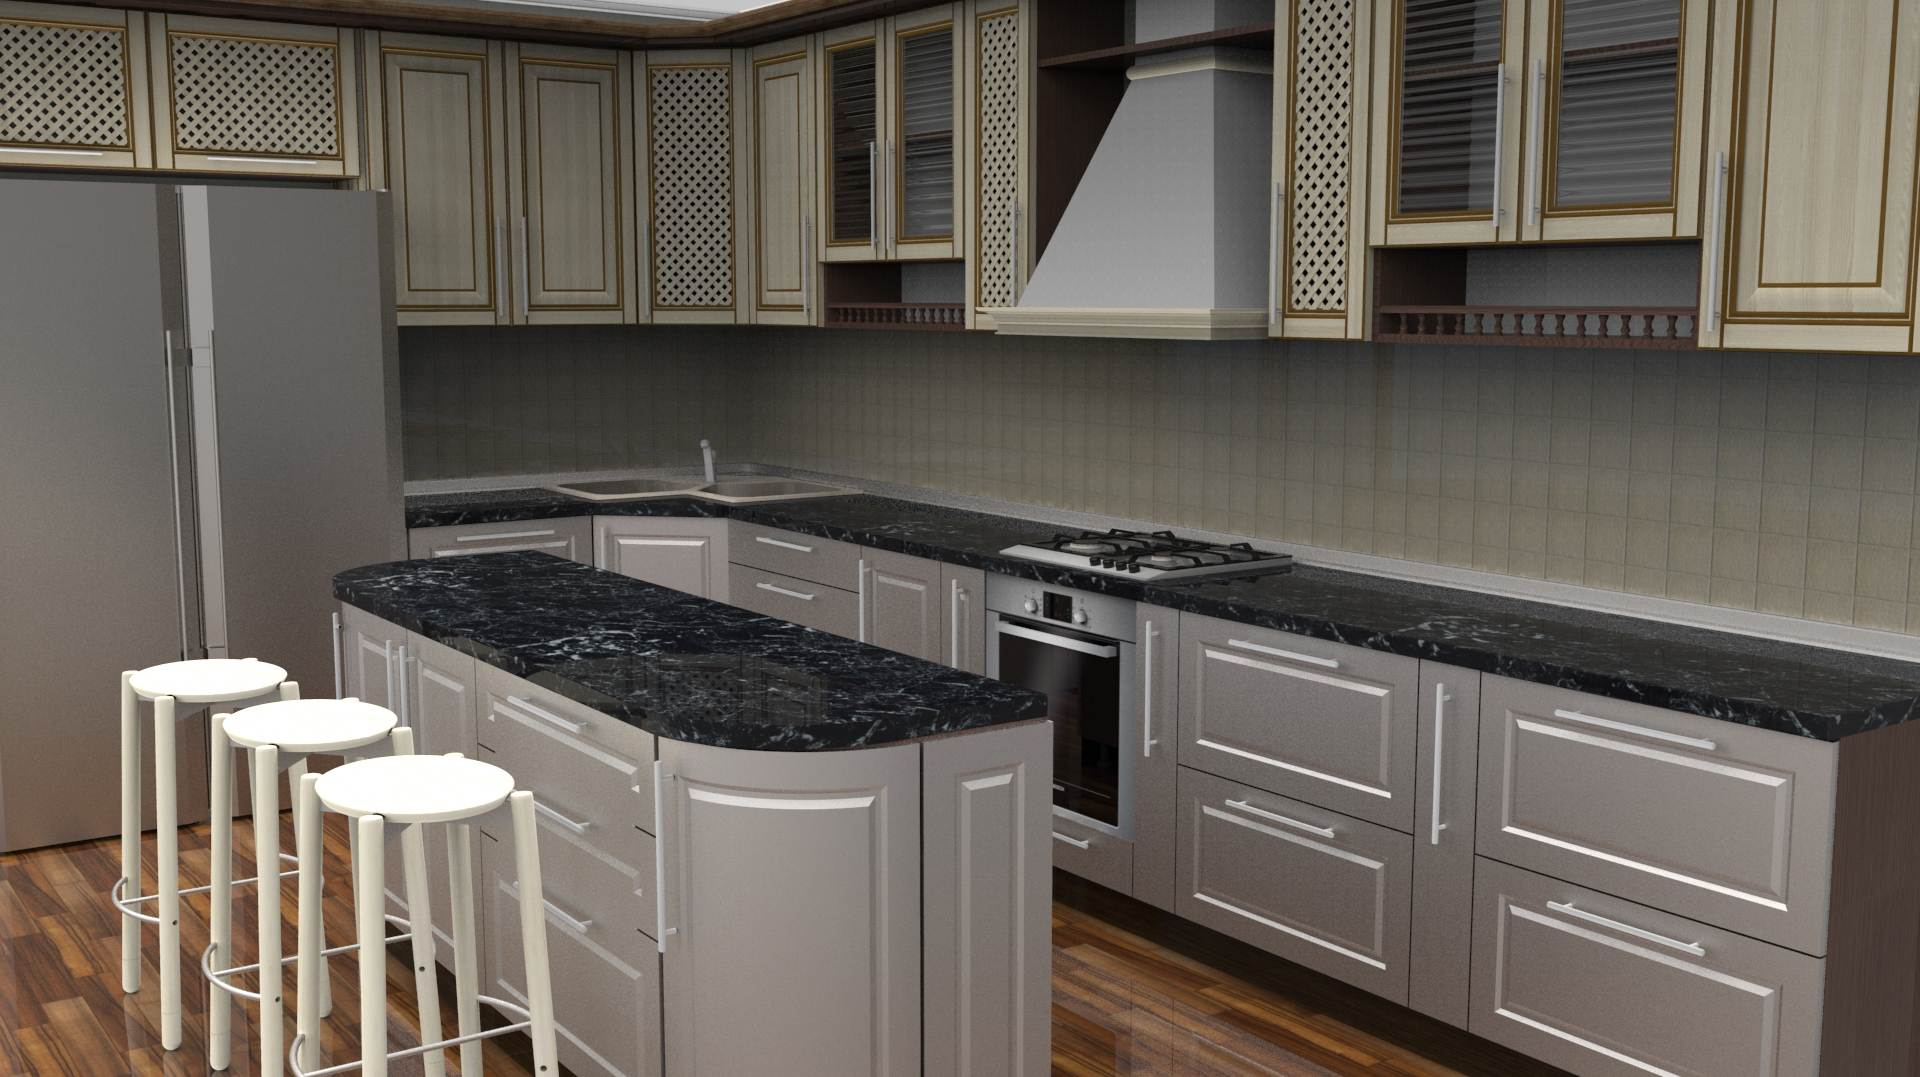 15 Best Online Kitchen Design Software Options Free Paid. Appealing Open  Source ... Part 62